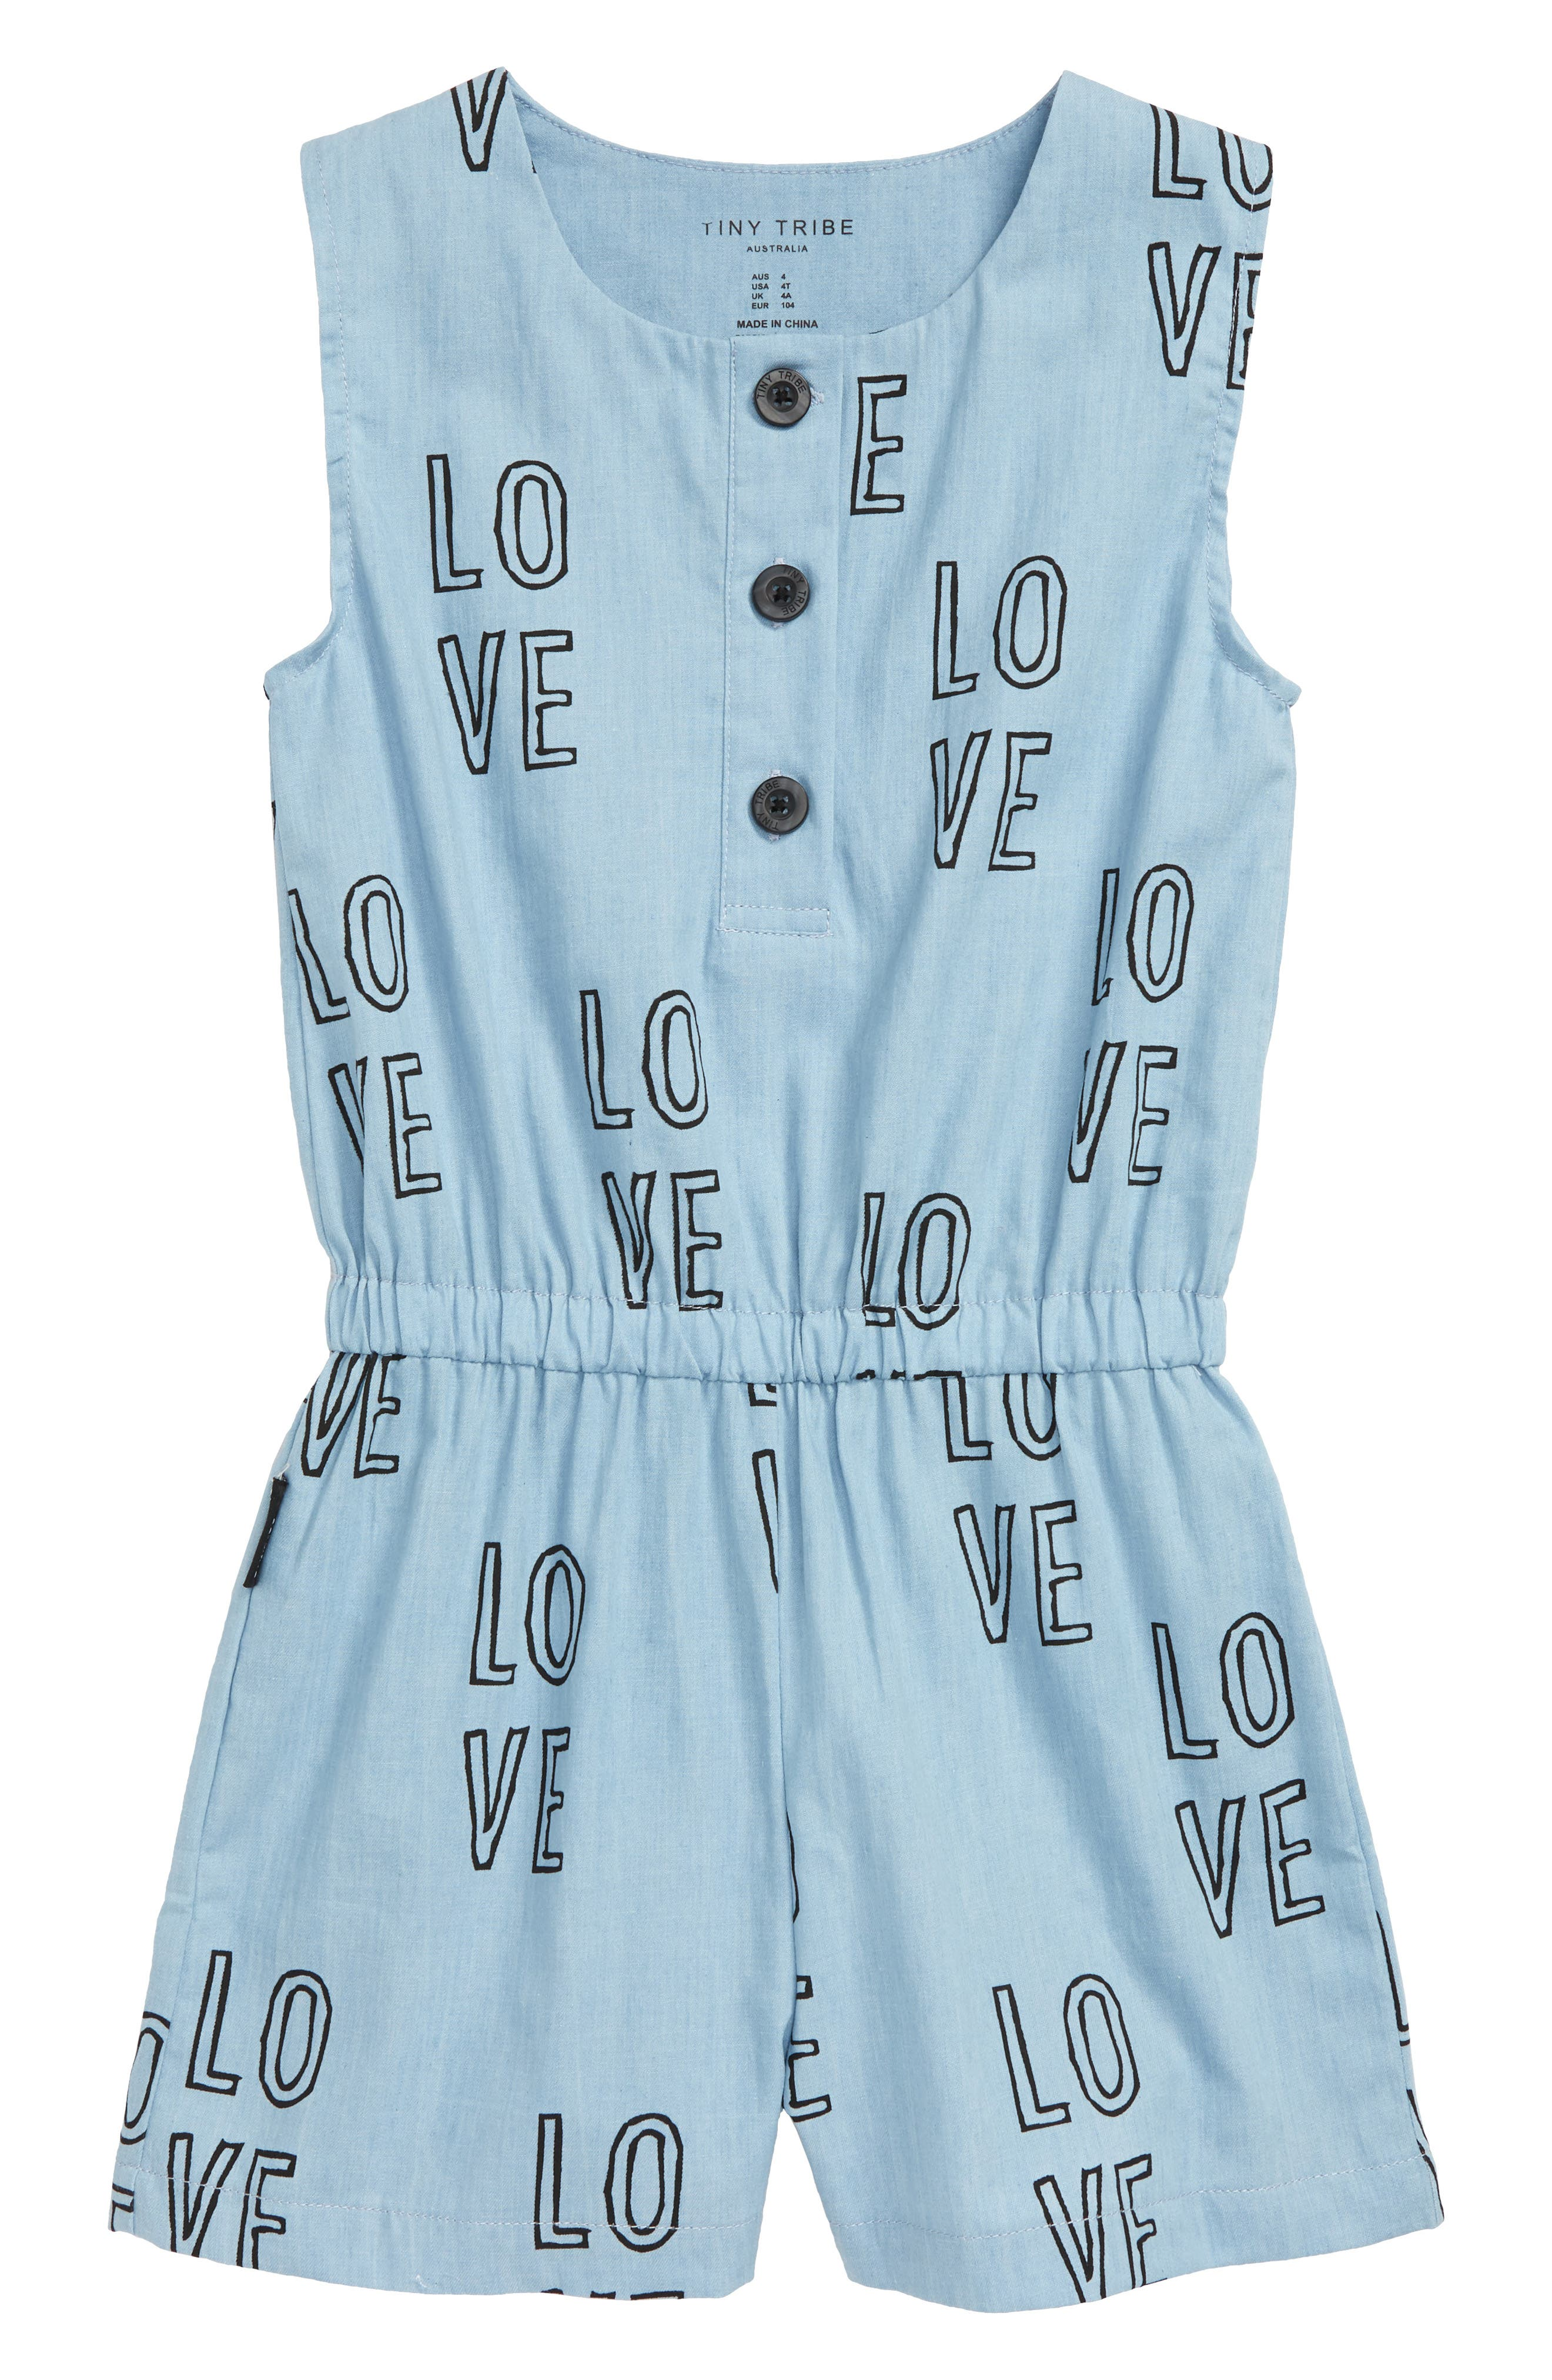 Toddler Girls Tiny Tribe Love Romper Size 4T US  4 AUS  Blue